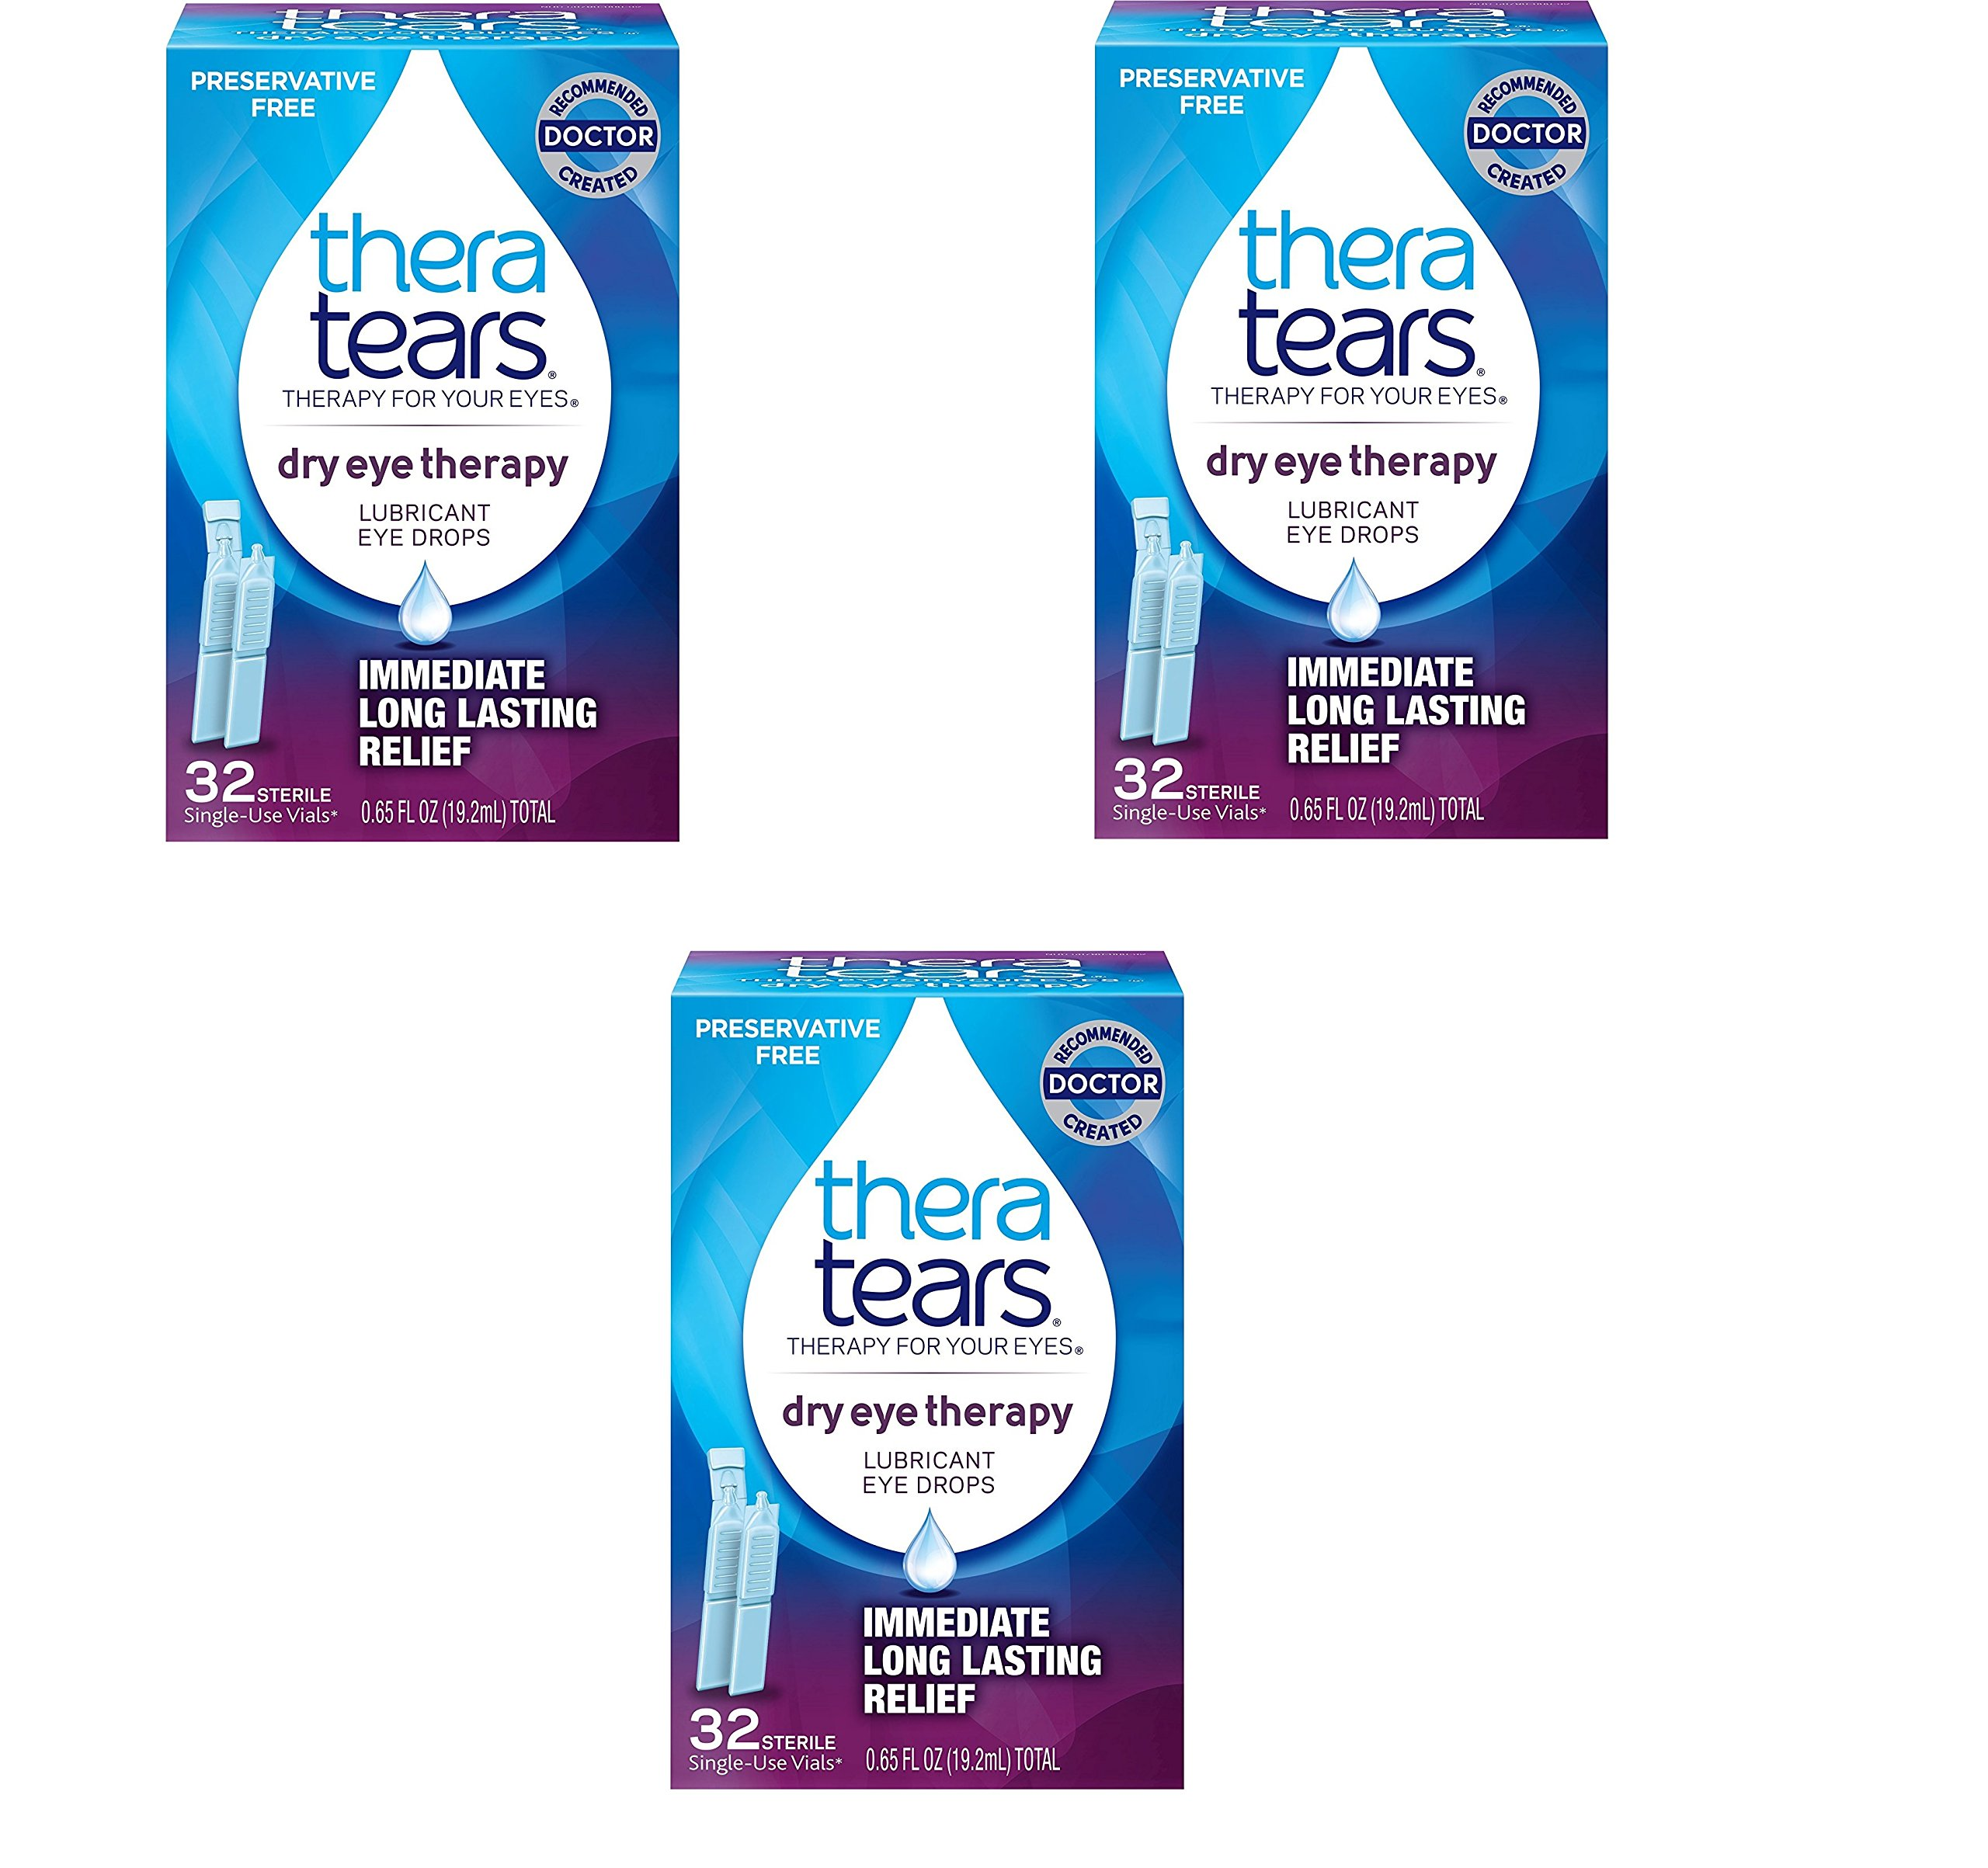 TheraTears Dry Eye Therapy- Lubricant Eye Drops- Preservative Free- 32 CT (3 Pack)